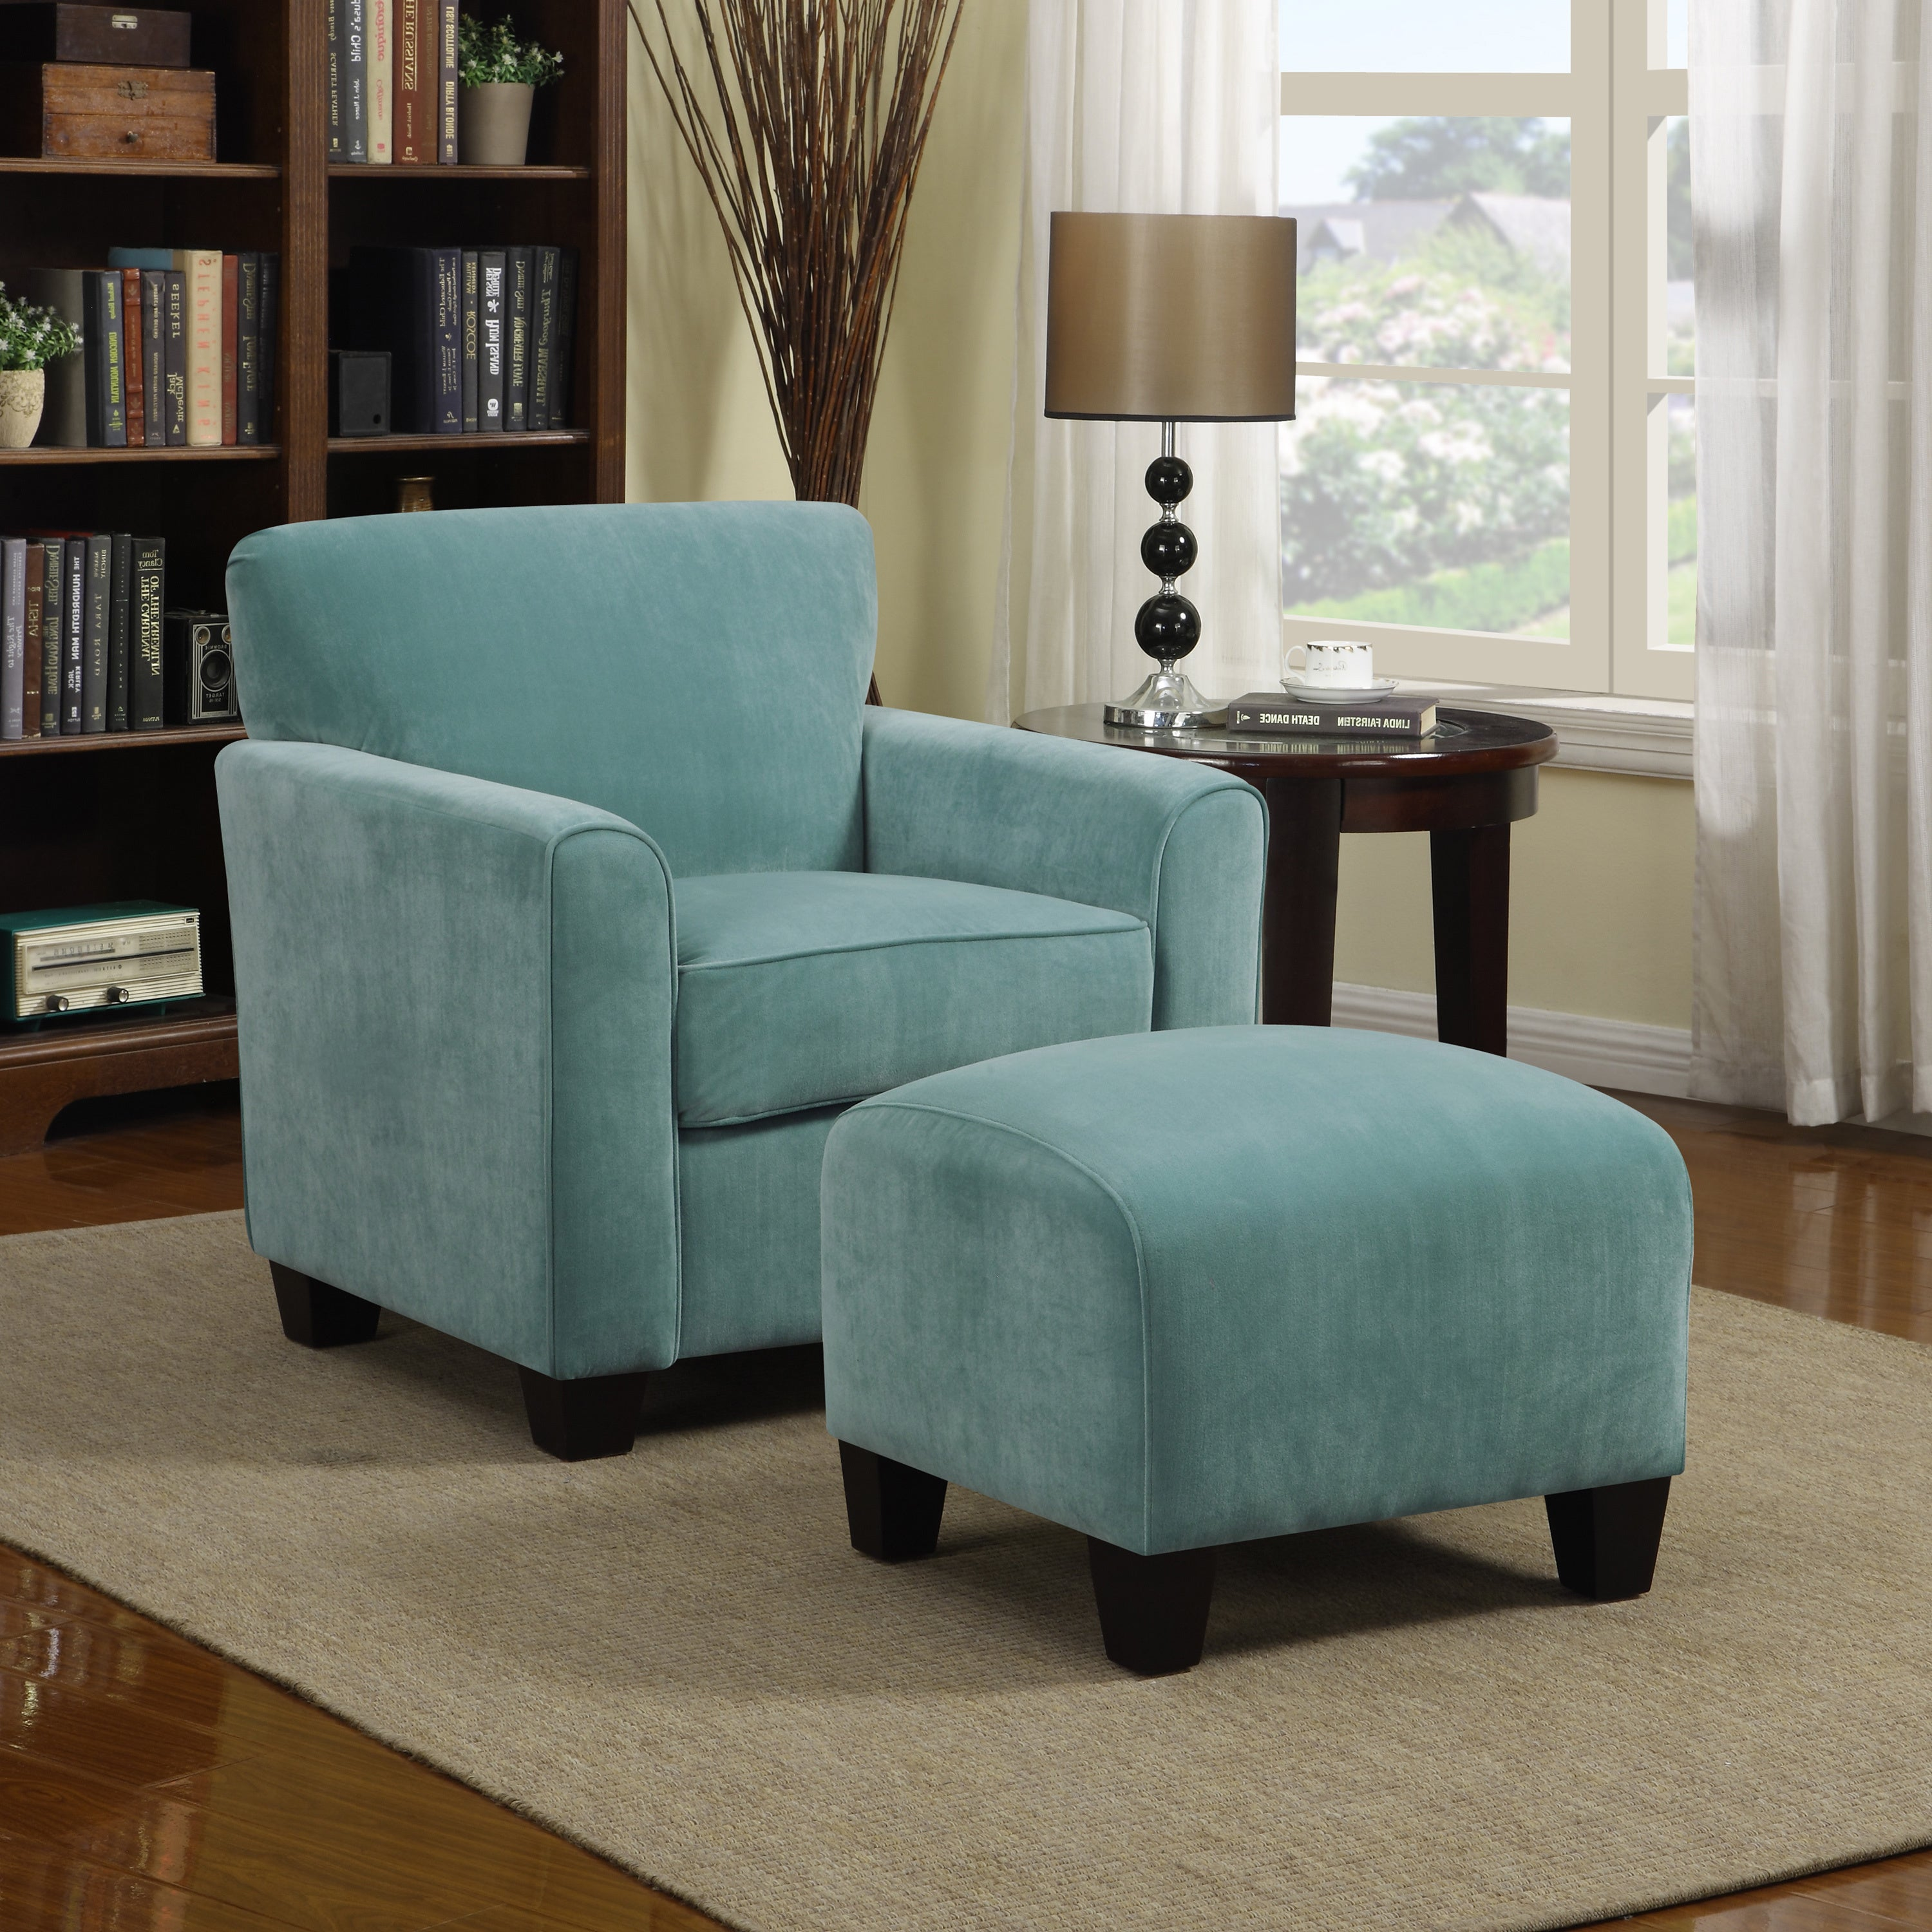 mira chair overstock shipping green grey linen living arm product and portfolio home garden chairs handy basil ottoman today ottomans free